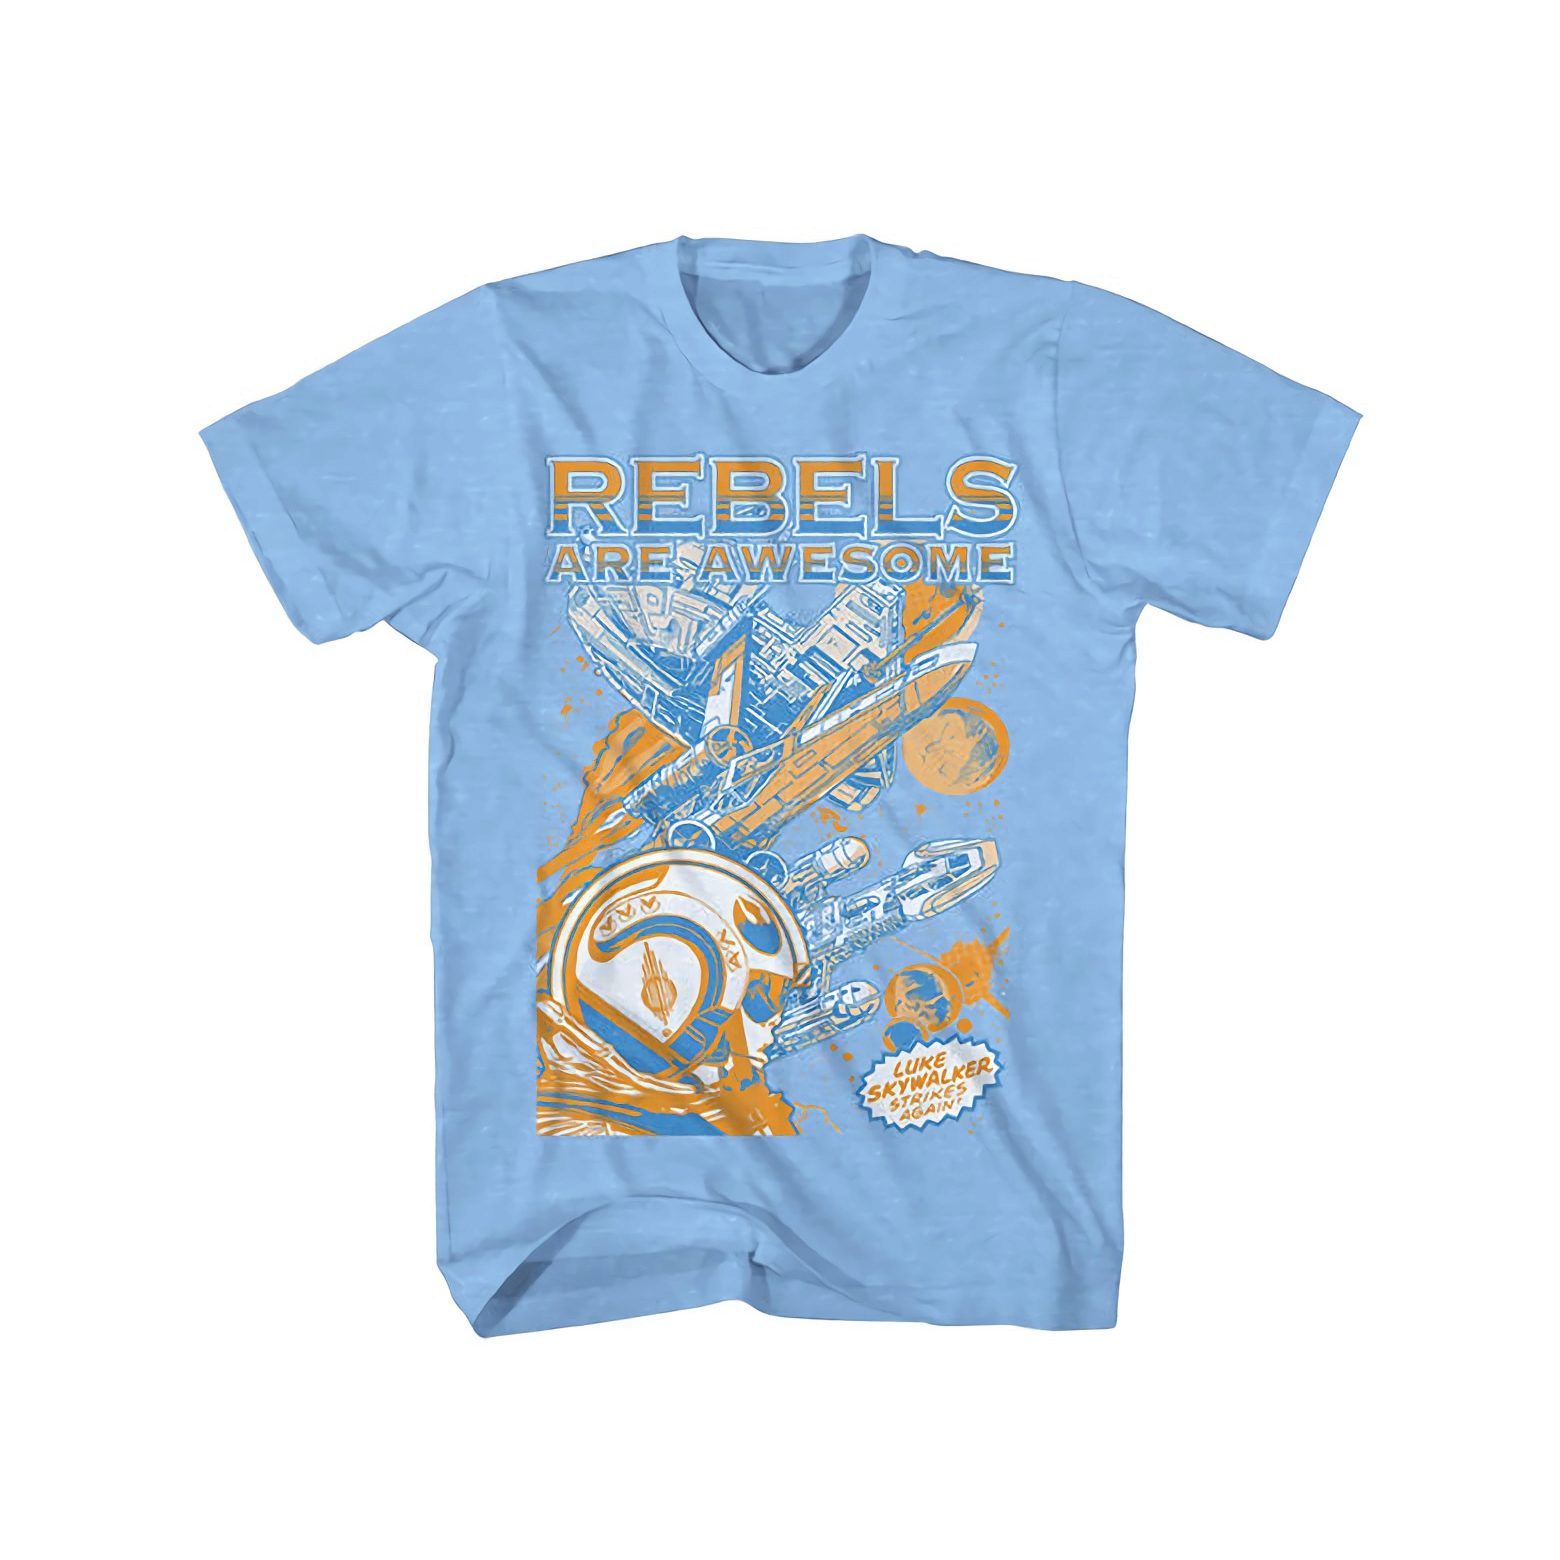 Star Wars Awesome Rebels Boys T-Shirt   L